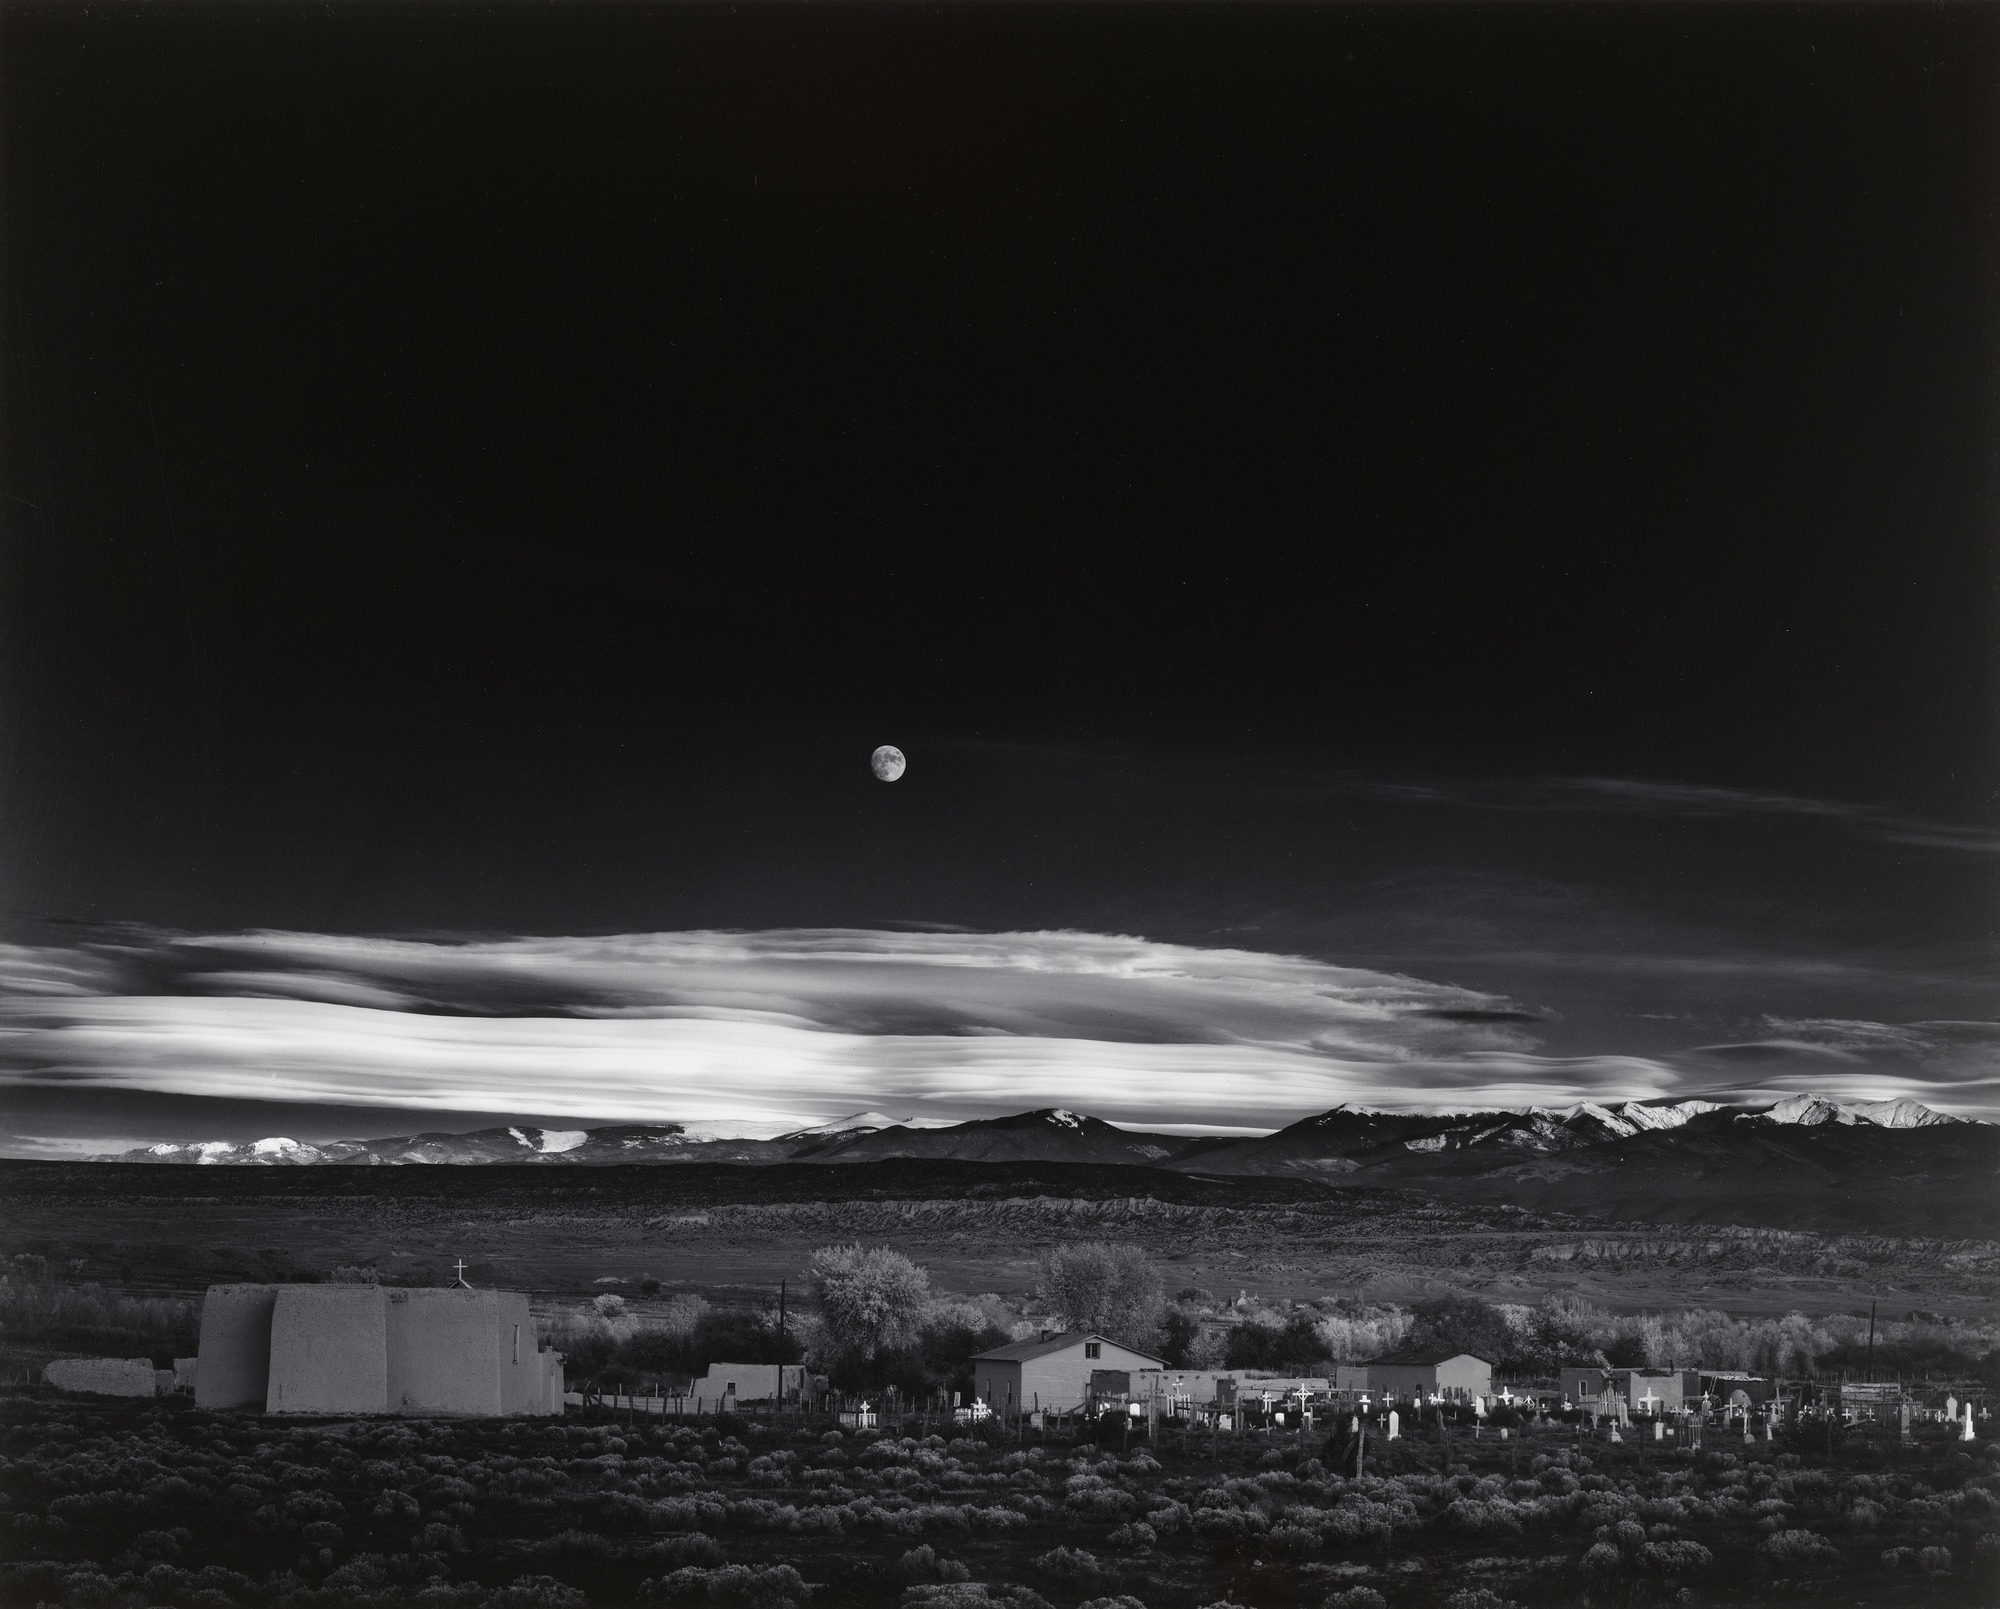 Moonrise,Hernandez, New Mexico, 1941